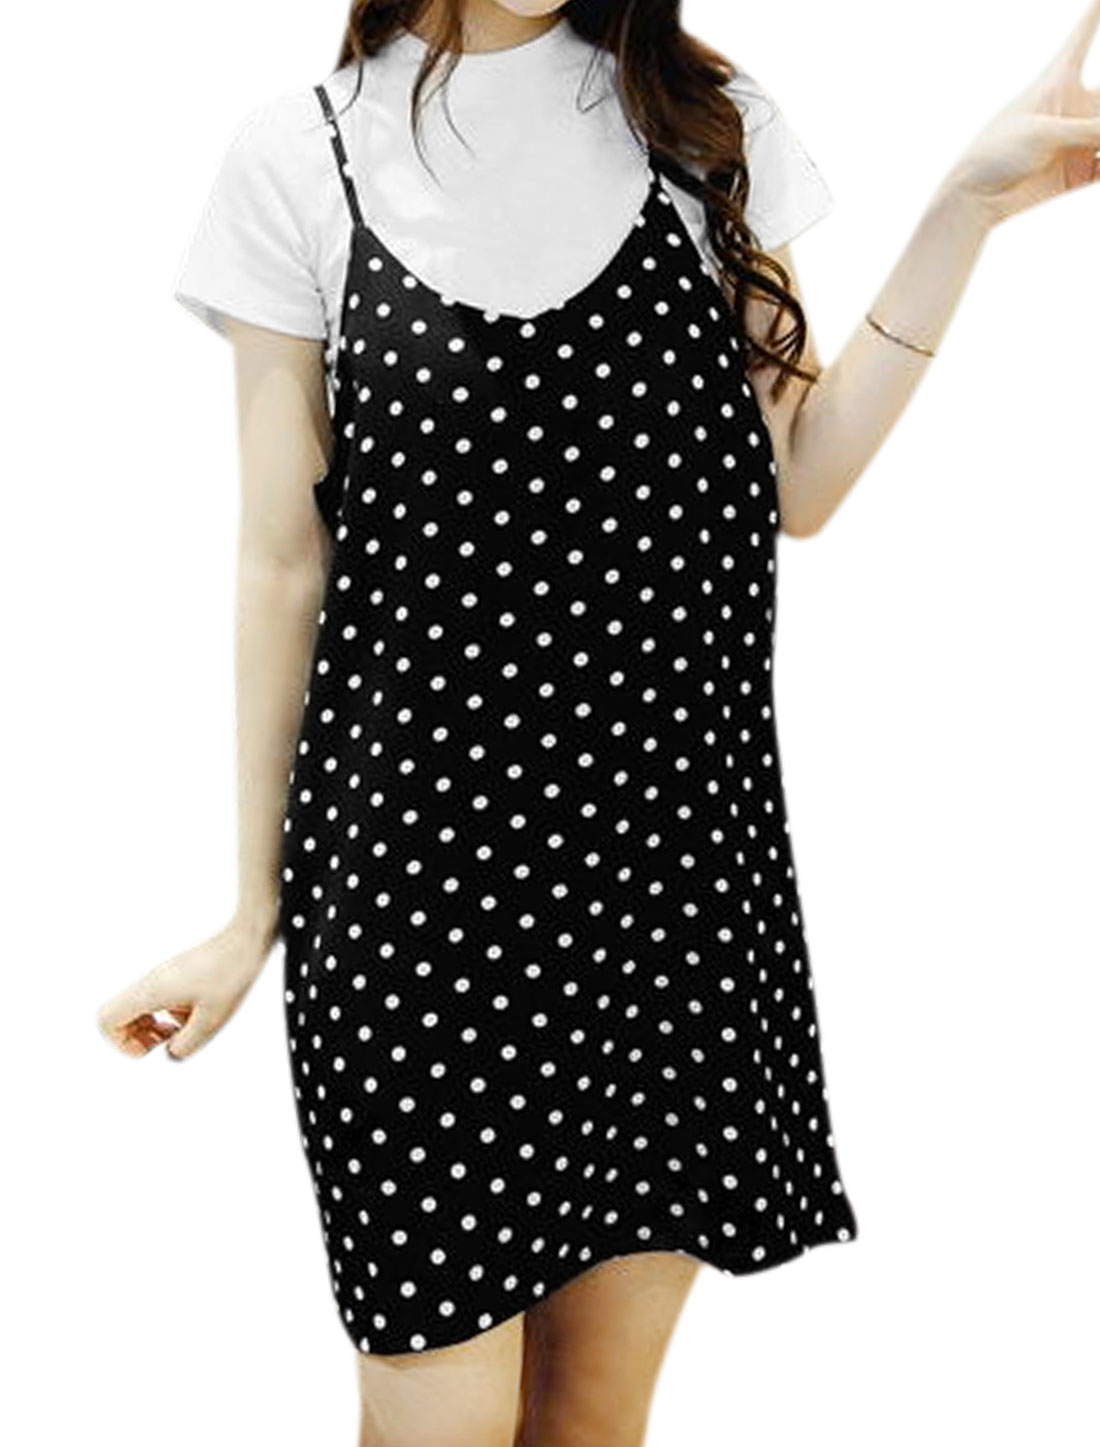 Women Mock Neck Basic Tee w Polka Dots Tunic Cami Dress Sets Black XS